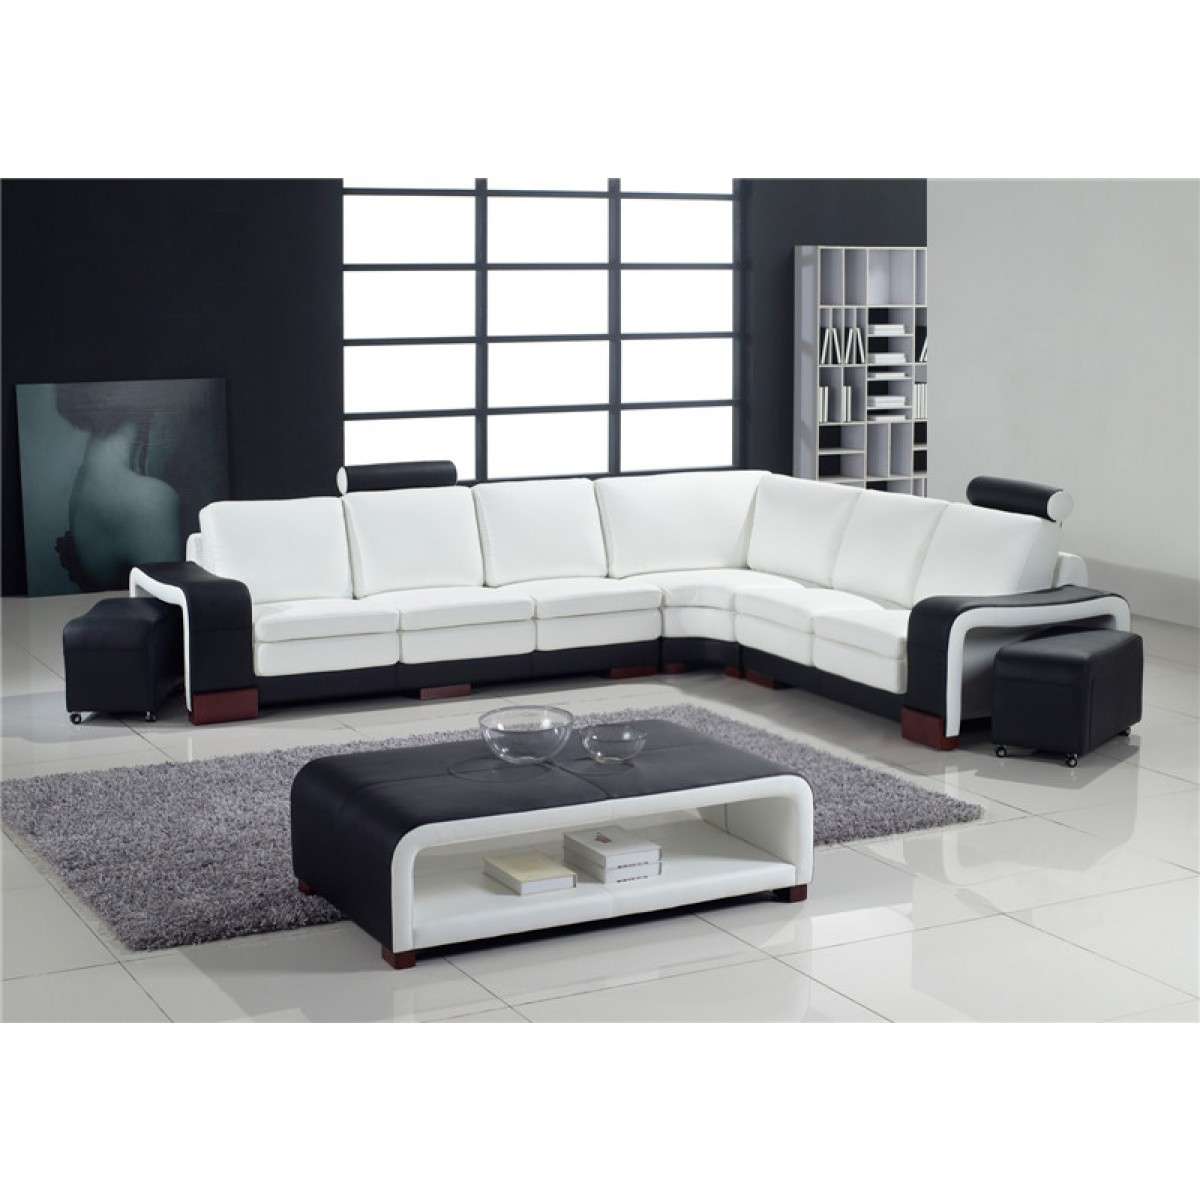 grand canap d 39 angle en cuir pleine fleur fabio option. Black Bedroom Furniture Sets. Home Design Ideas